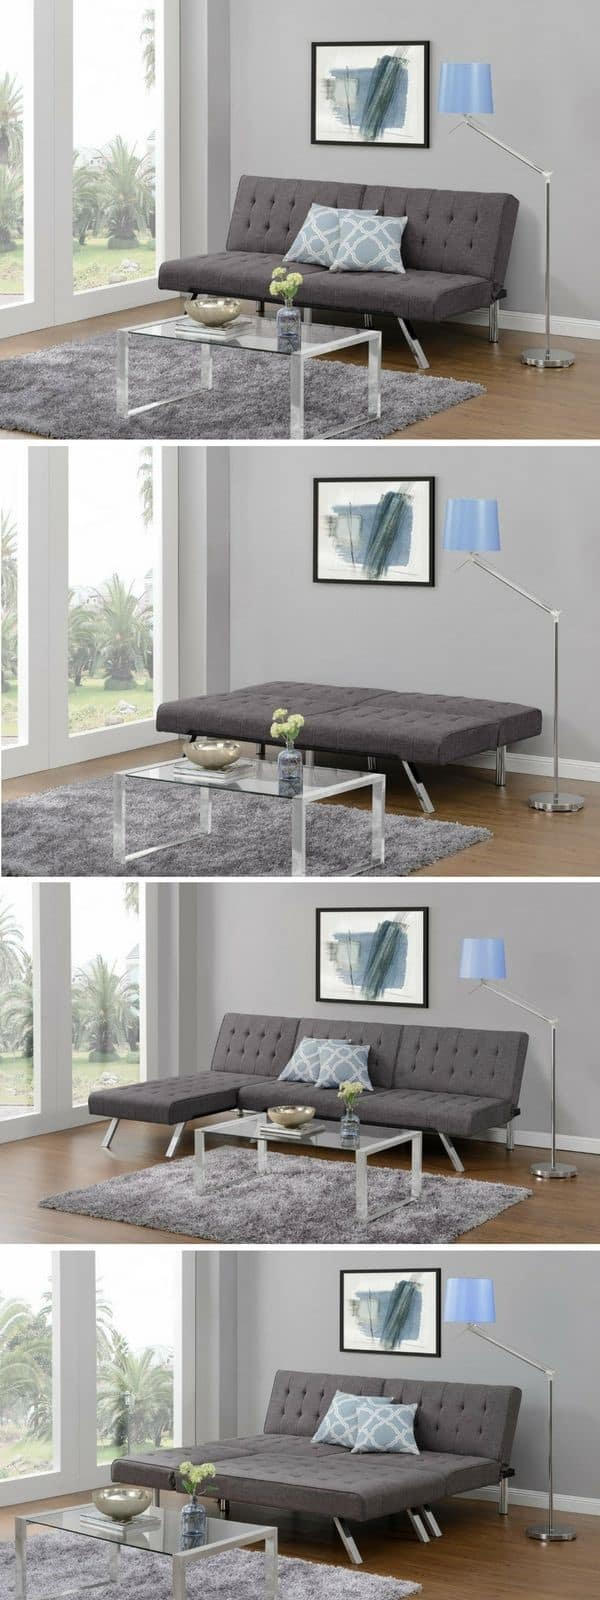 Futon sofa beds provide similar advantages but are too firm to sleep on